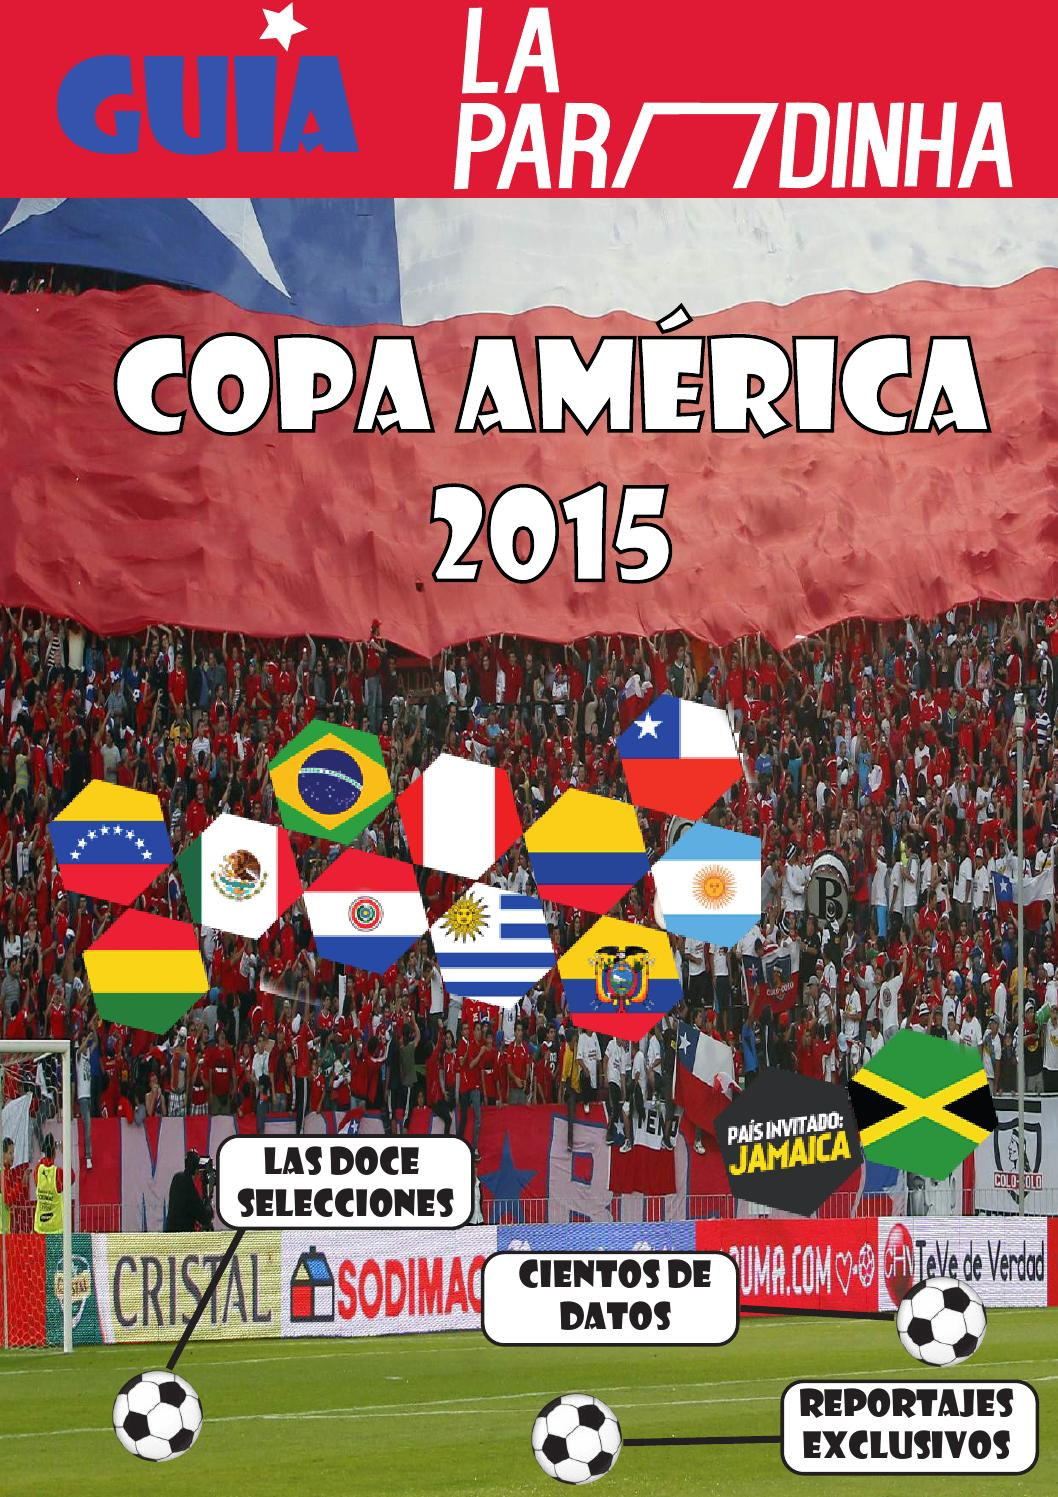 huge selection of 57644 975f4 Guía La Paradinha Copa América 2015 by Ignacio Mateo Martín - issuu